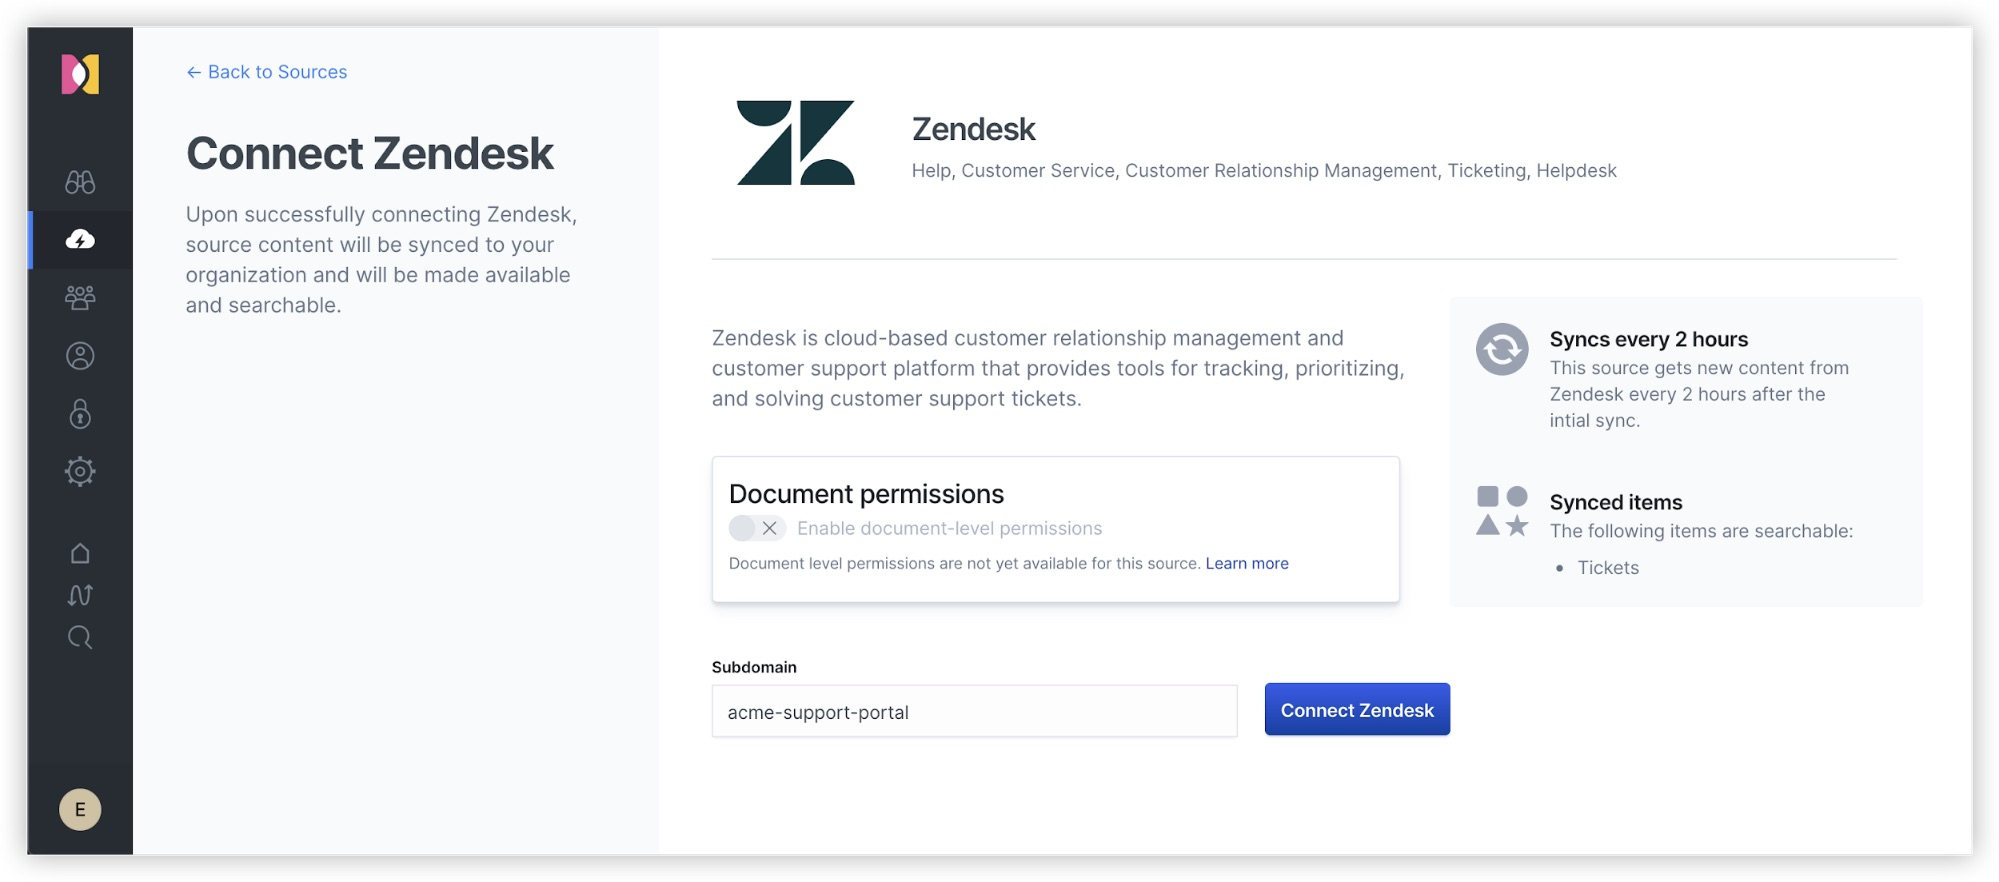 Connecting Zendesk as a source